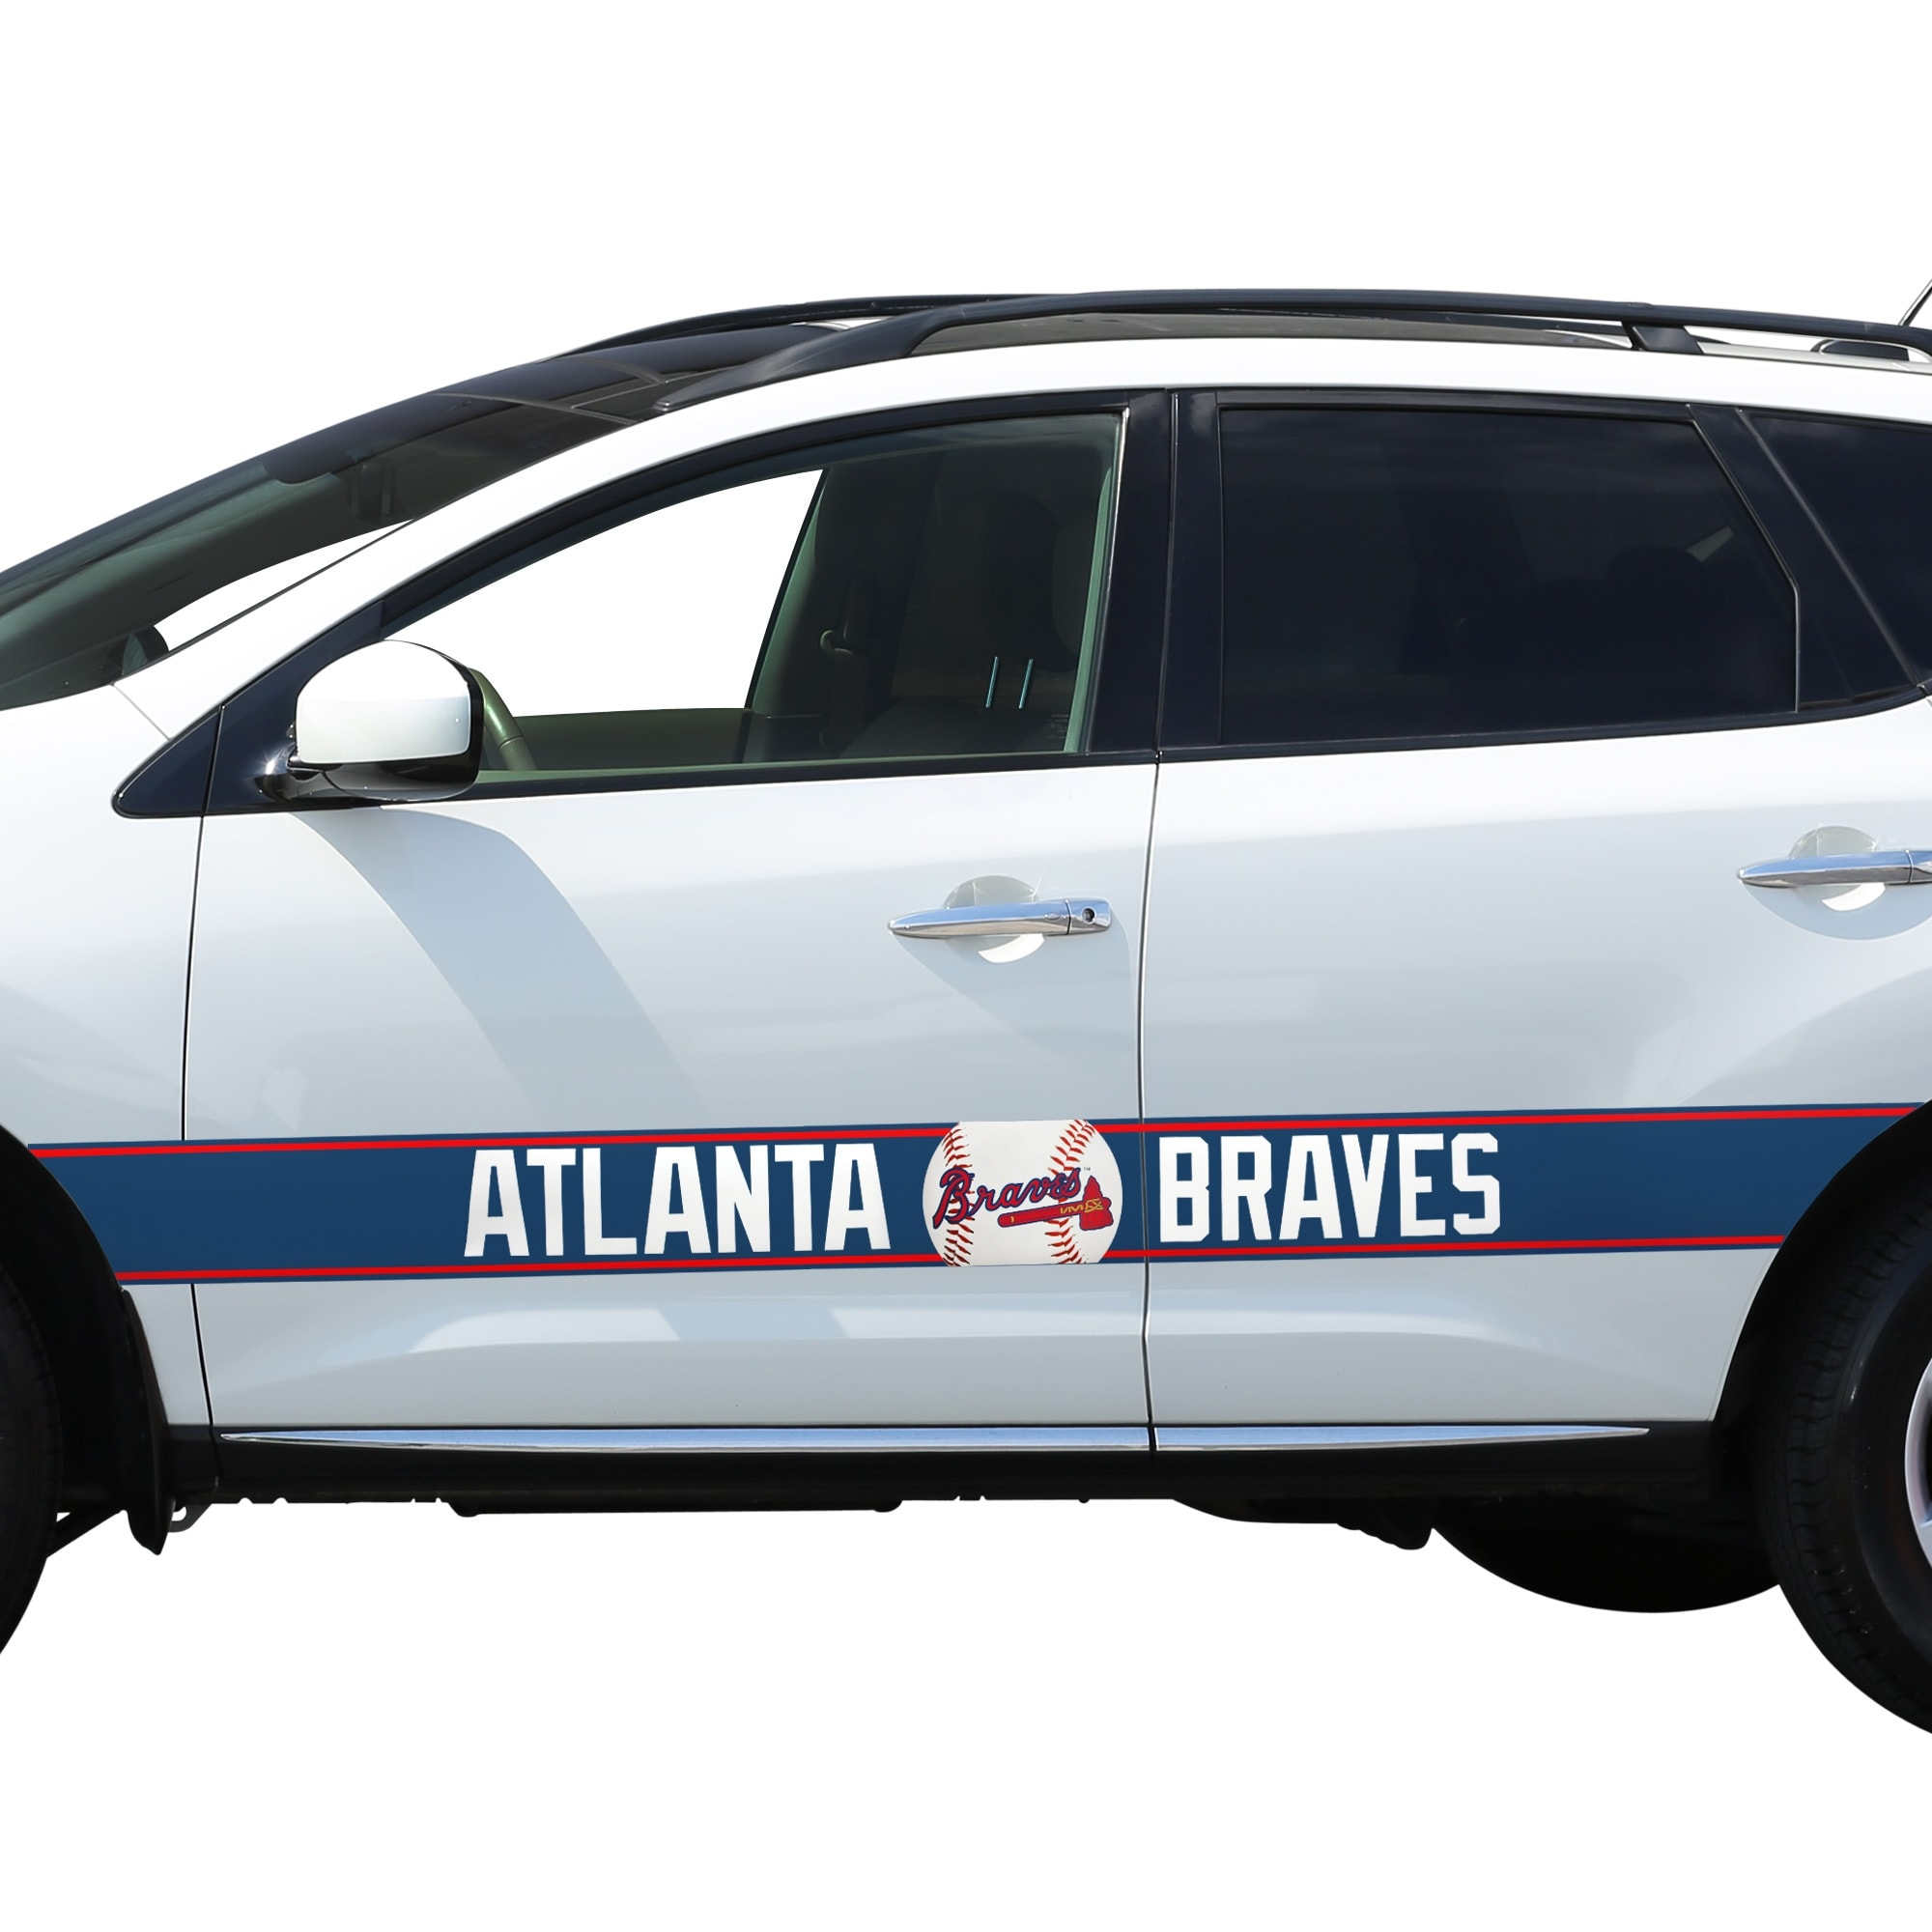 Atlanta Braves Team Ball Racing Stripe Car Decals